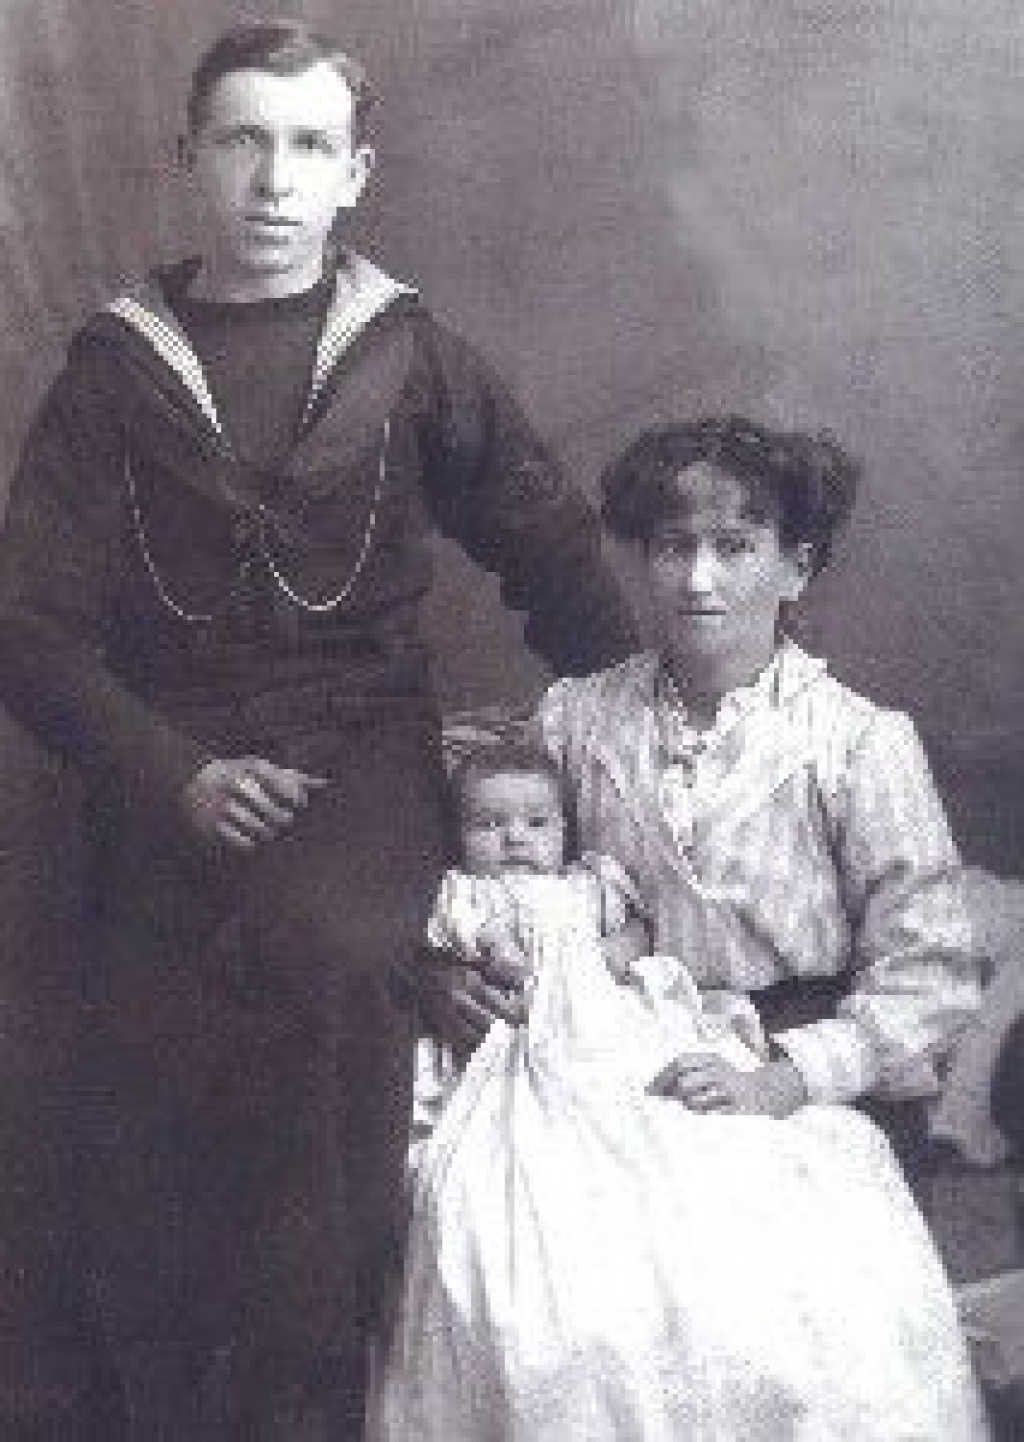 P.O. Thomas Ernest Neal  (pictured with wife Maud, and daughter Winifred) Petty Officer Neal was killed on HMS Invincible  Maud and Winifred were resident at 14 Lucknow St., Fratton, Portsmouth, Courtesy of Mrs J Newcombe